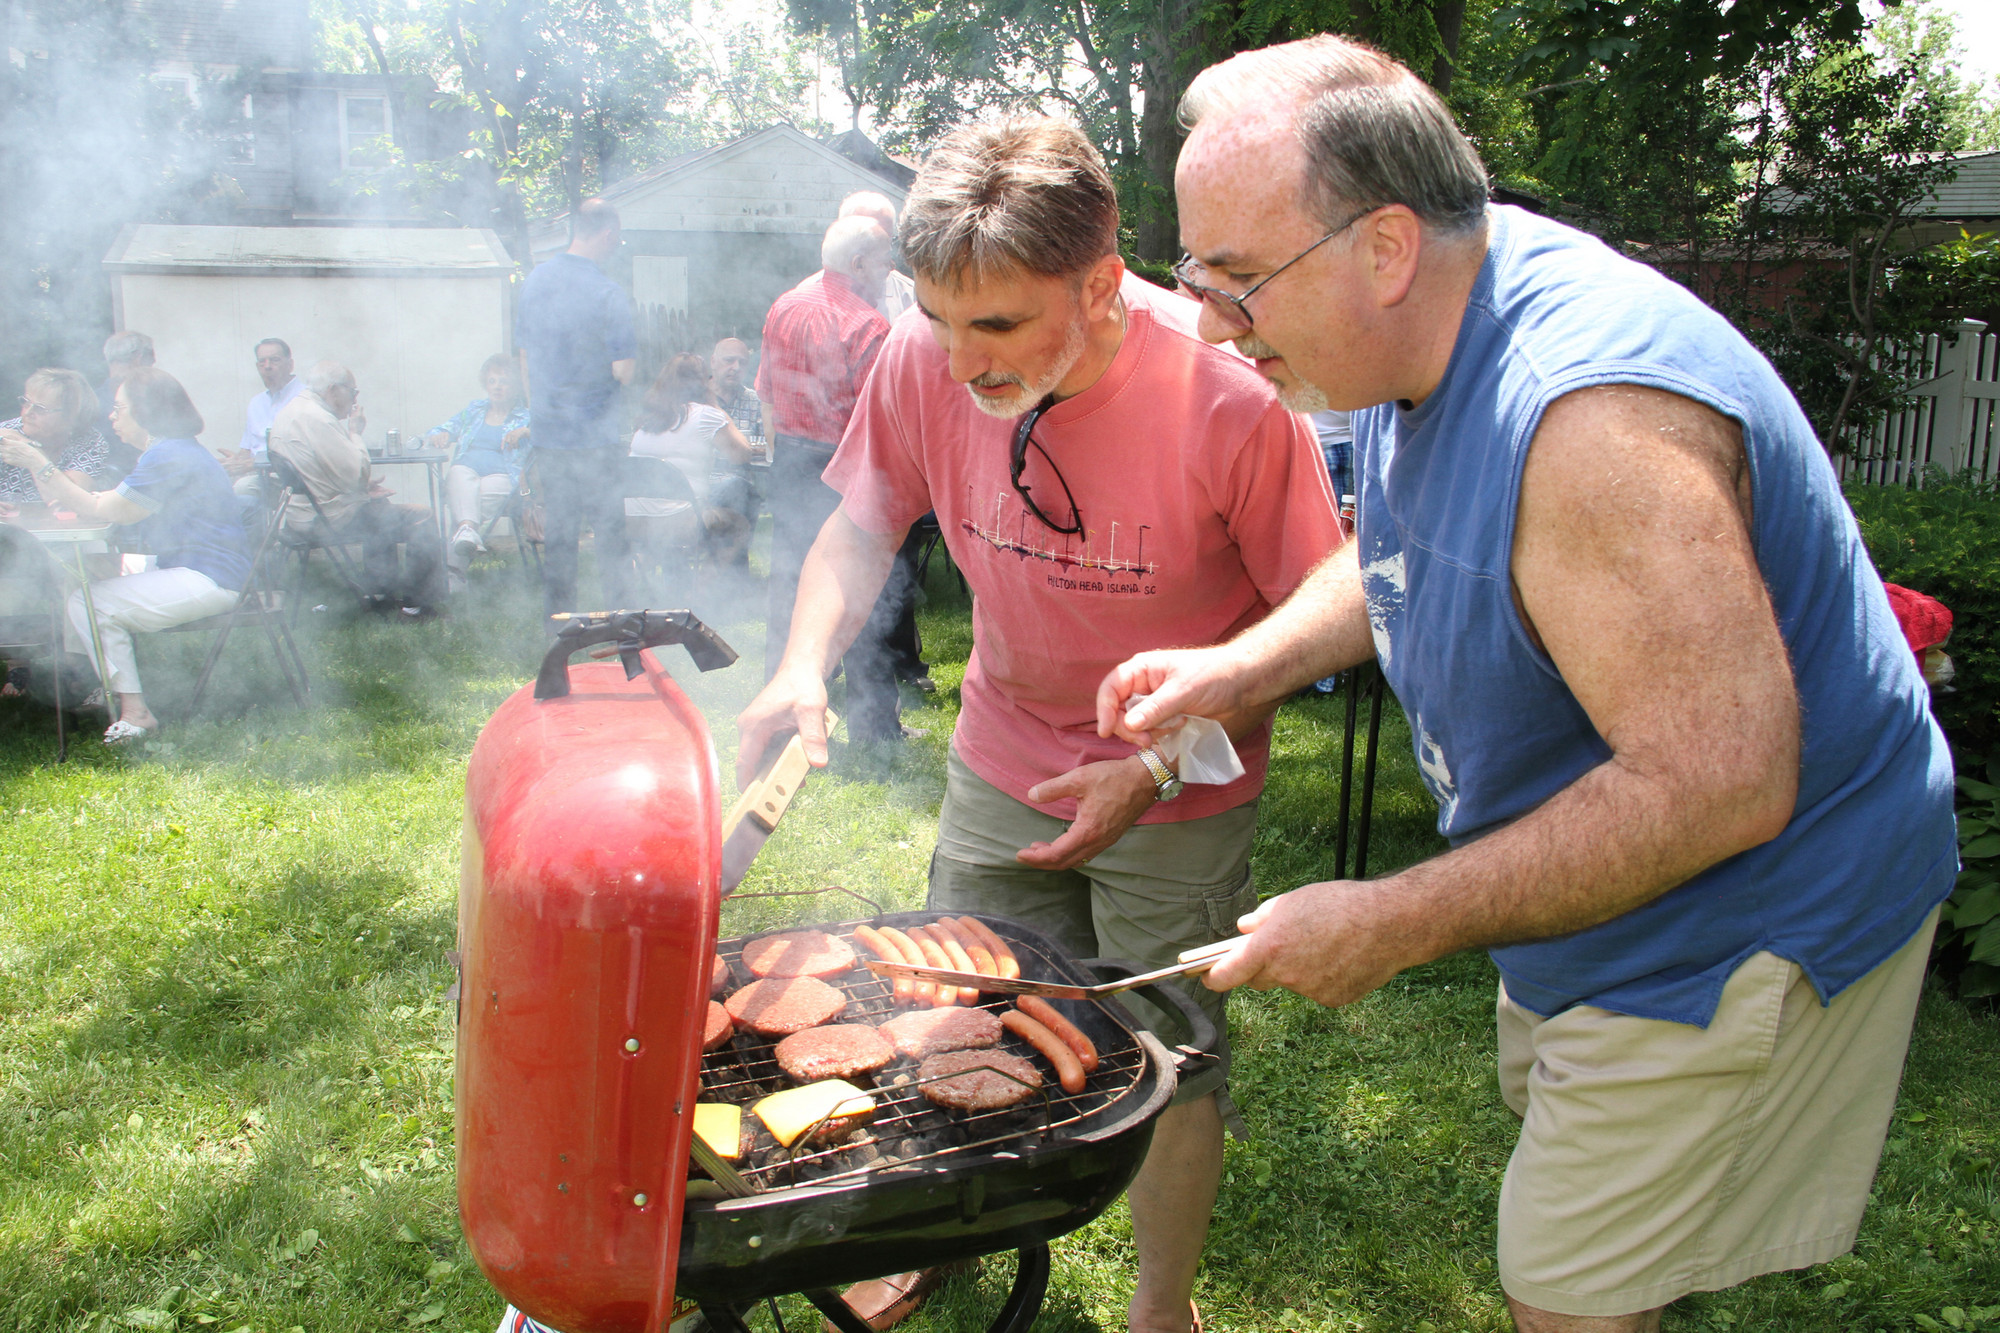 Rick Grieco and Ed Hassel man the grill.